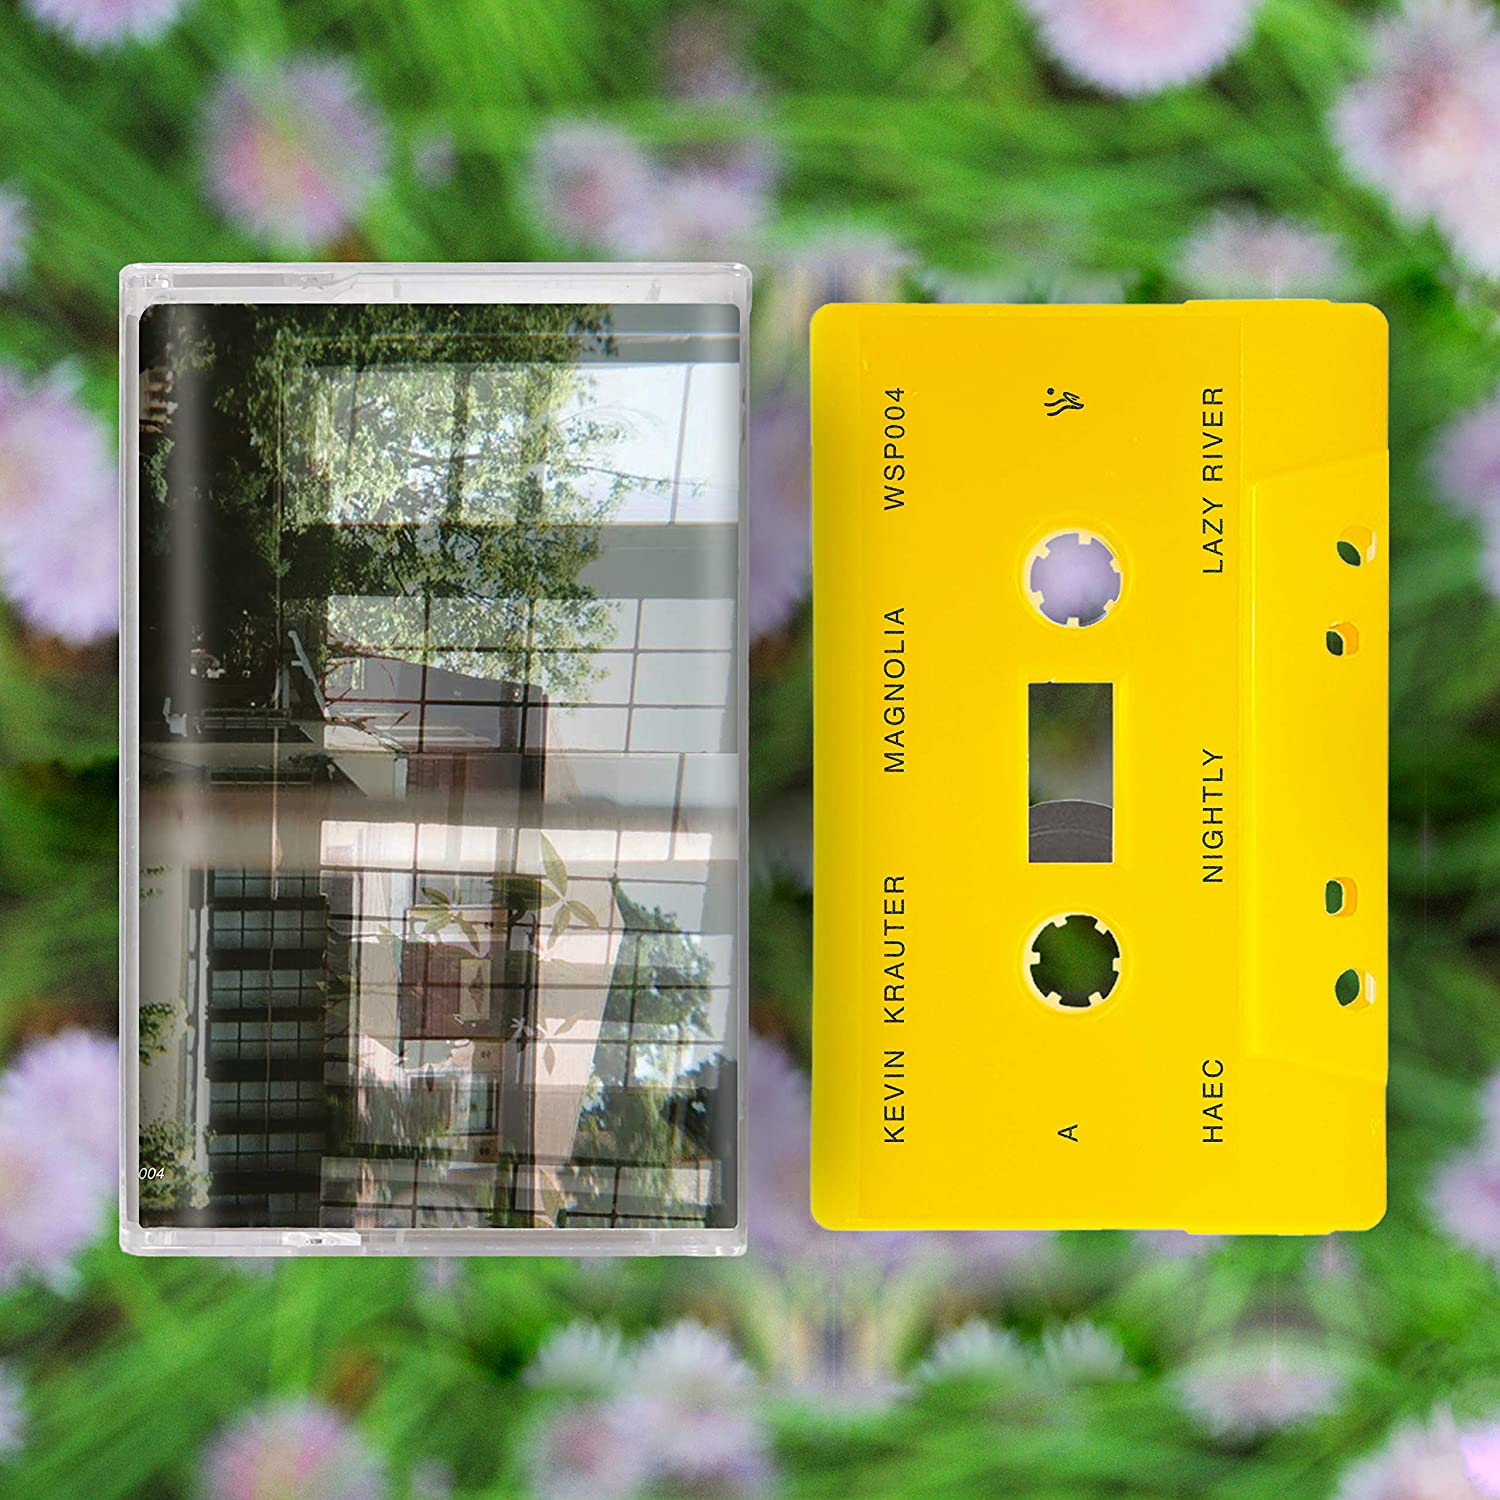 Kevin Krauter - Magnolia [Cassette] - Urban Vinyl | Records, Headphones, and more.